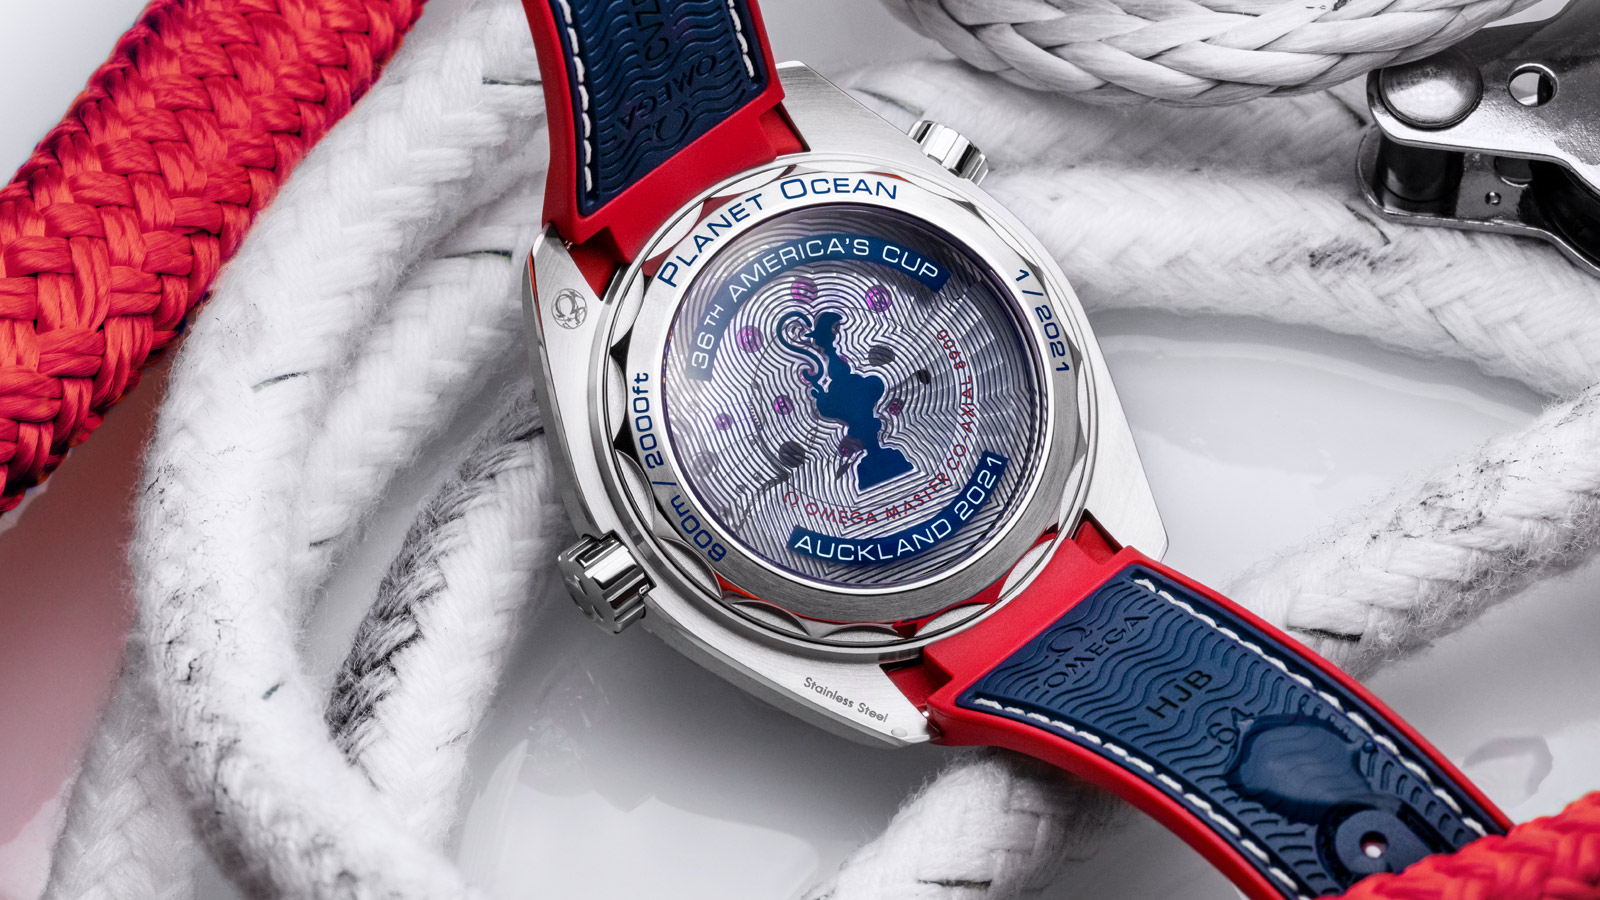 Seamaster America's Cup Edition Watches - Slide 3 - 89423